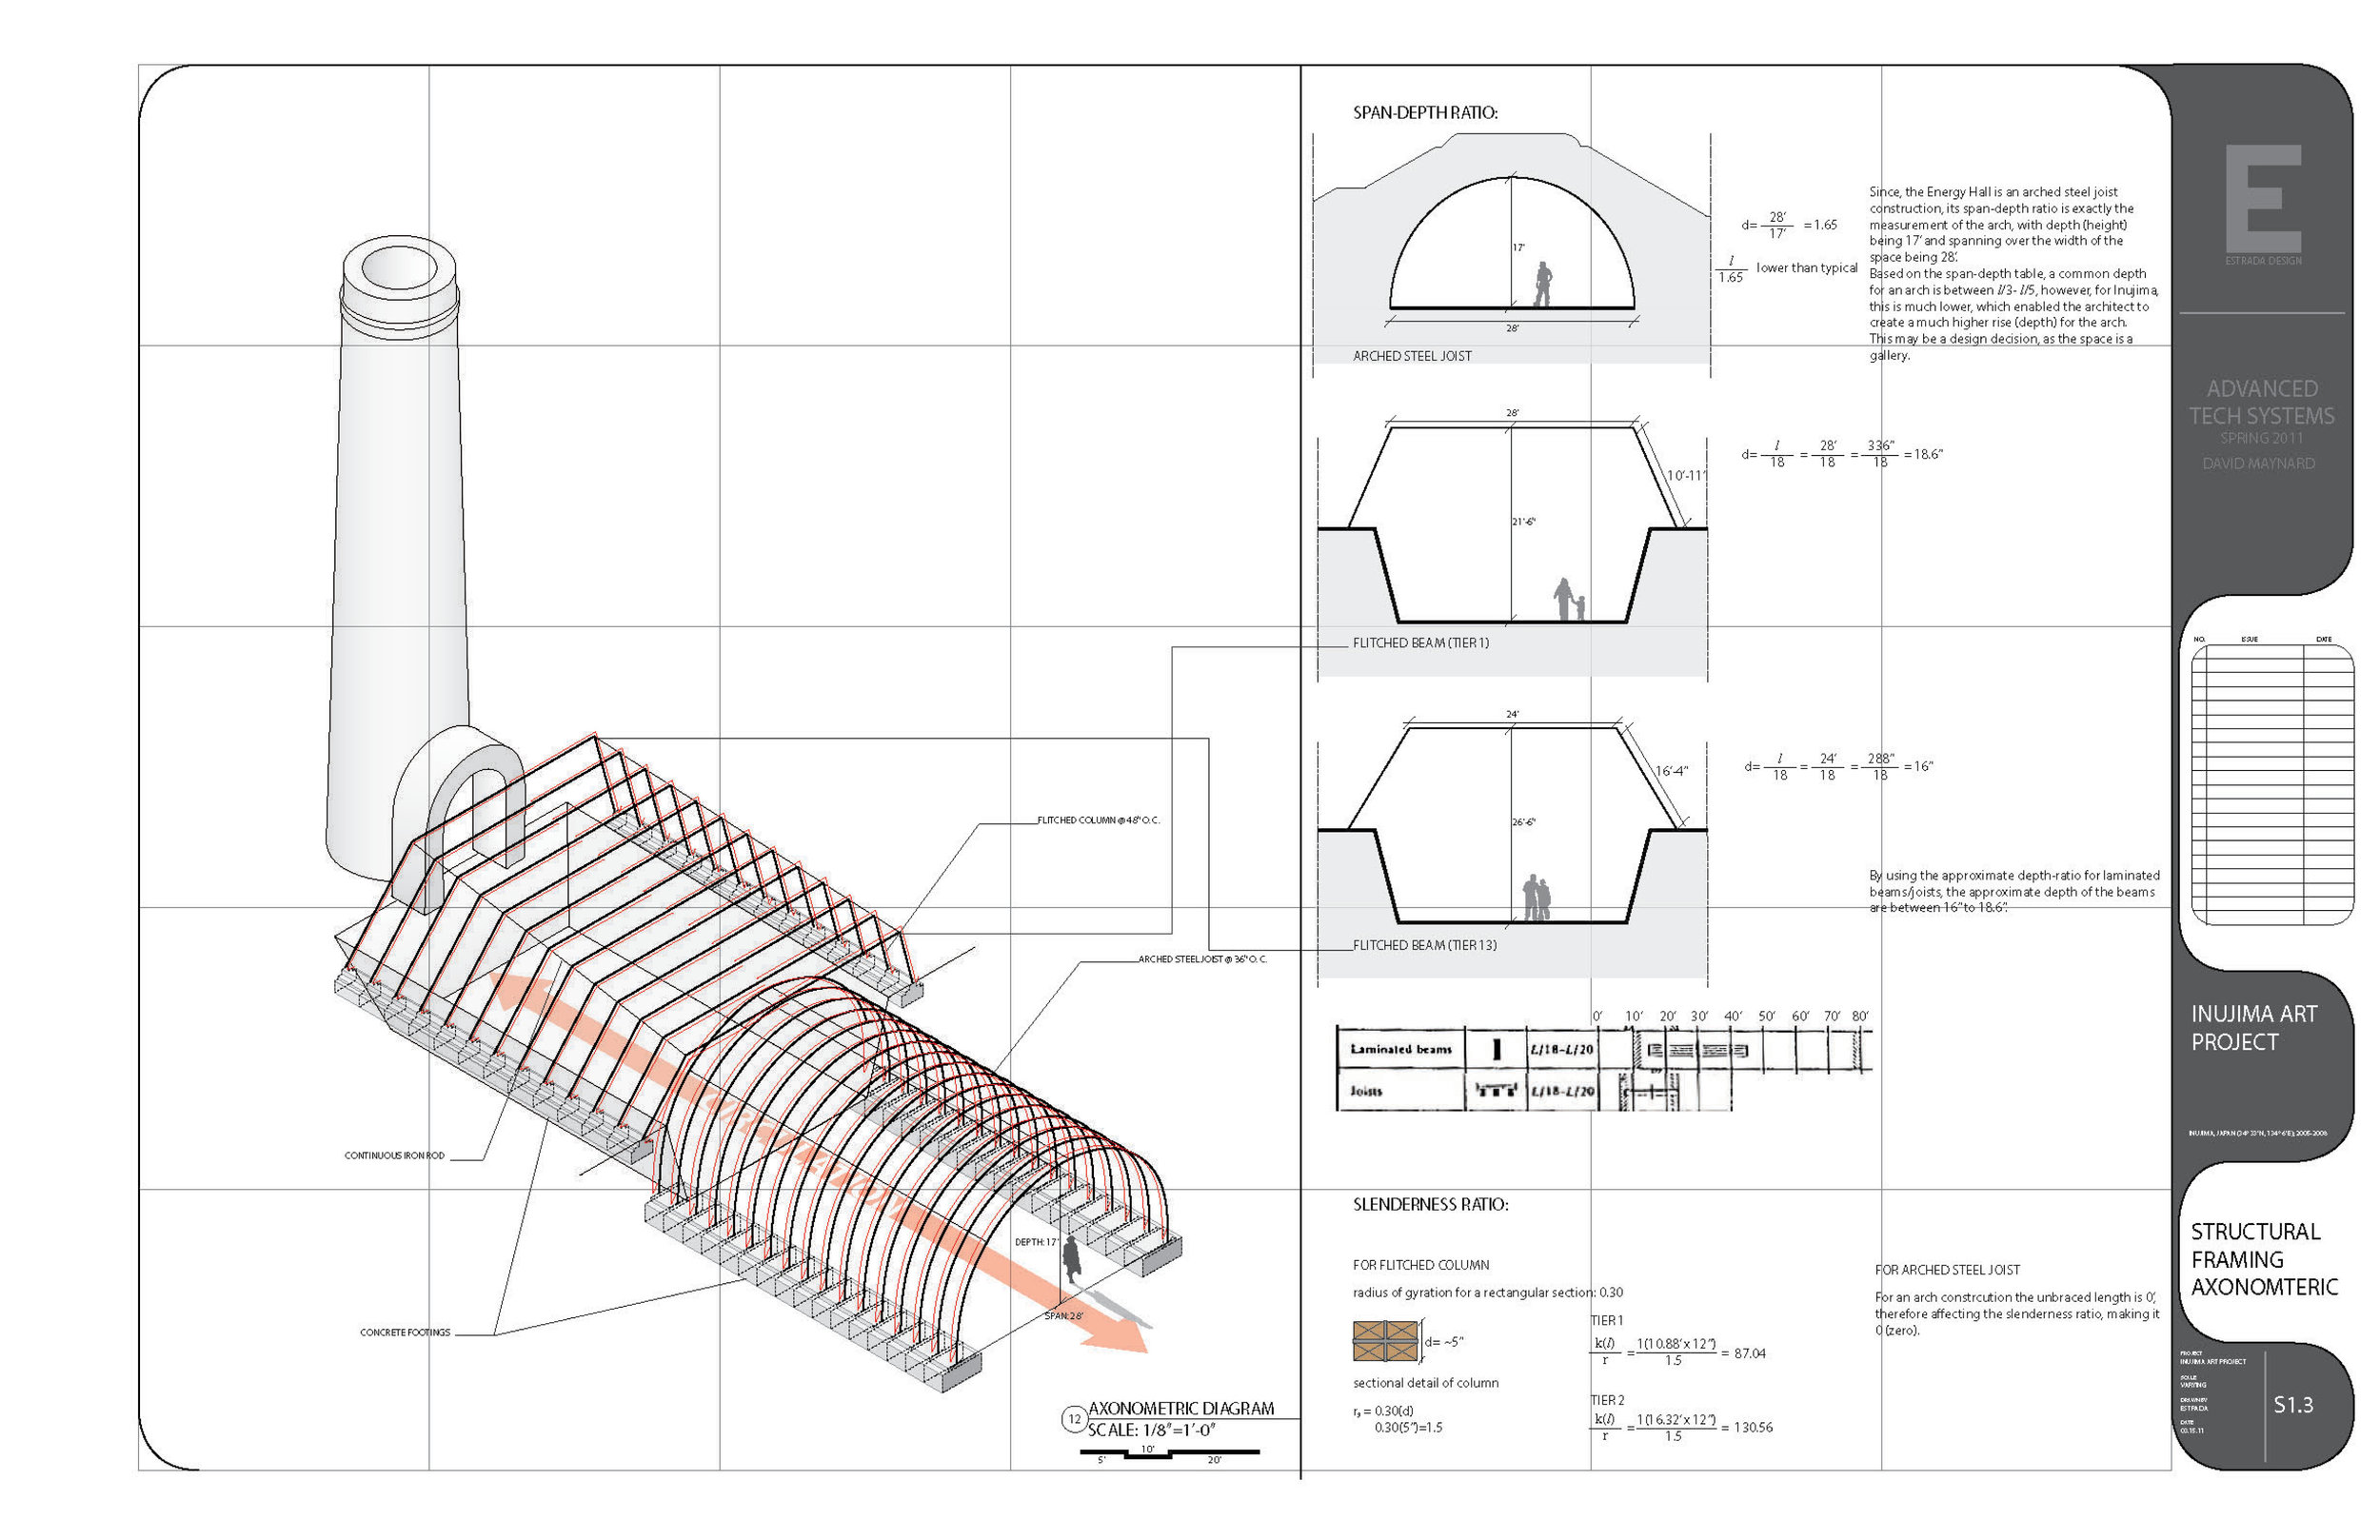 Structural Analysis of  Inujima Art Project